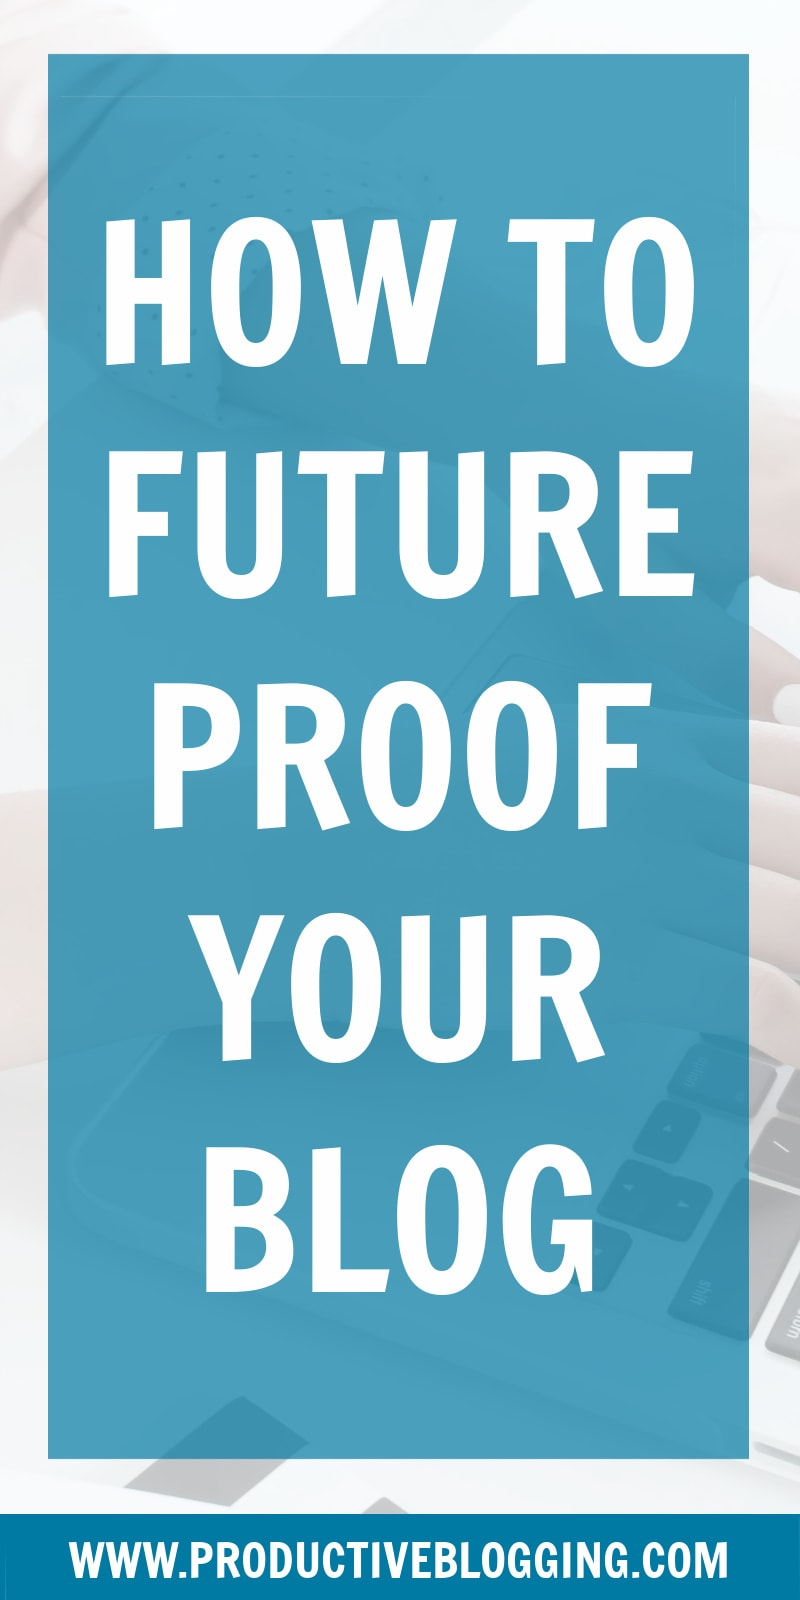 How secure is your blogging income right now? Many bloggers are in quite a precarious position… just one small algorithm change away from radically slashed traffic and income. Here's how to future-proof your blog. #makemoneyblogging #moneymakingblog #profitableblog #blogginglife #bloglife #blogging #bloggersofIG #professionalblogger #solopreneur #mompreneur #bloggingtips #productivitytips #productivity #productivebloggingcommunity #productiveblogging #blogsmarternotharder #productiveblogging